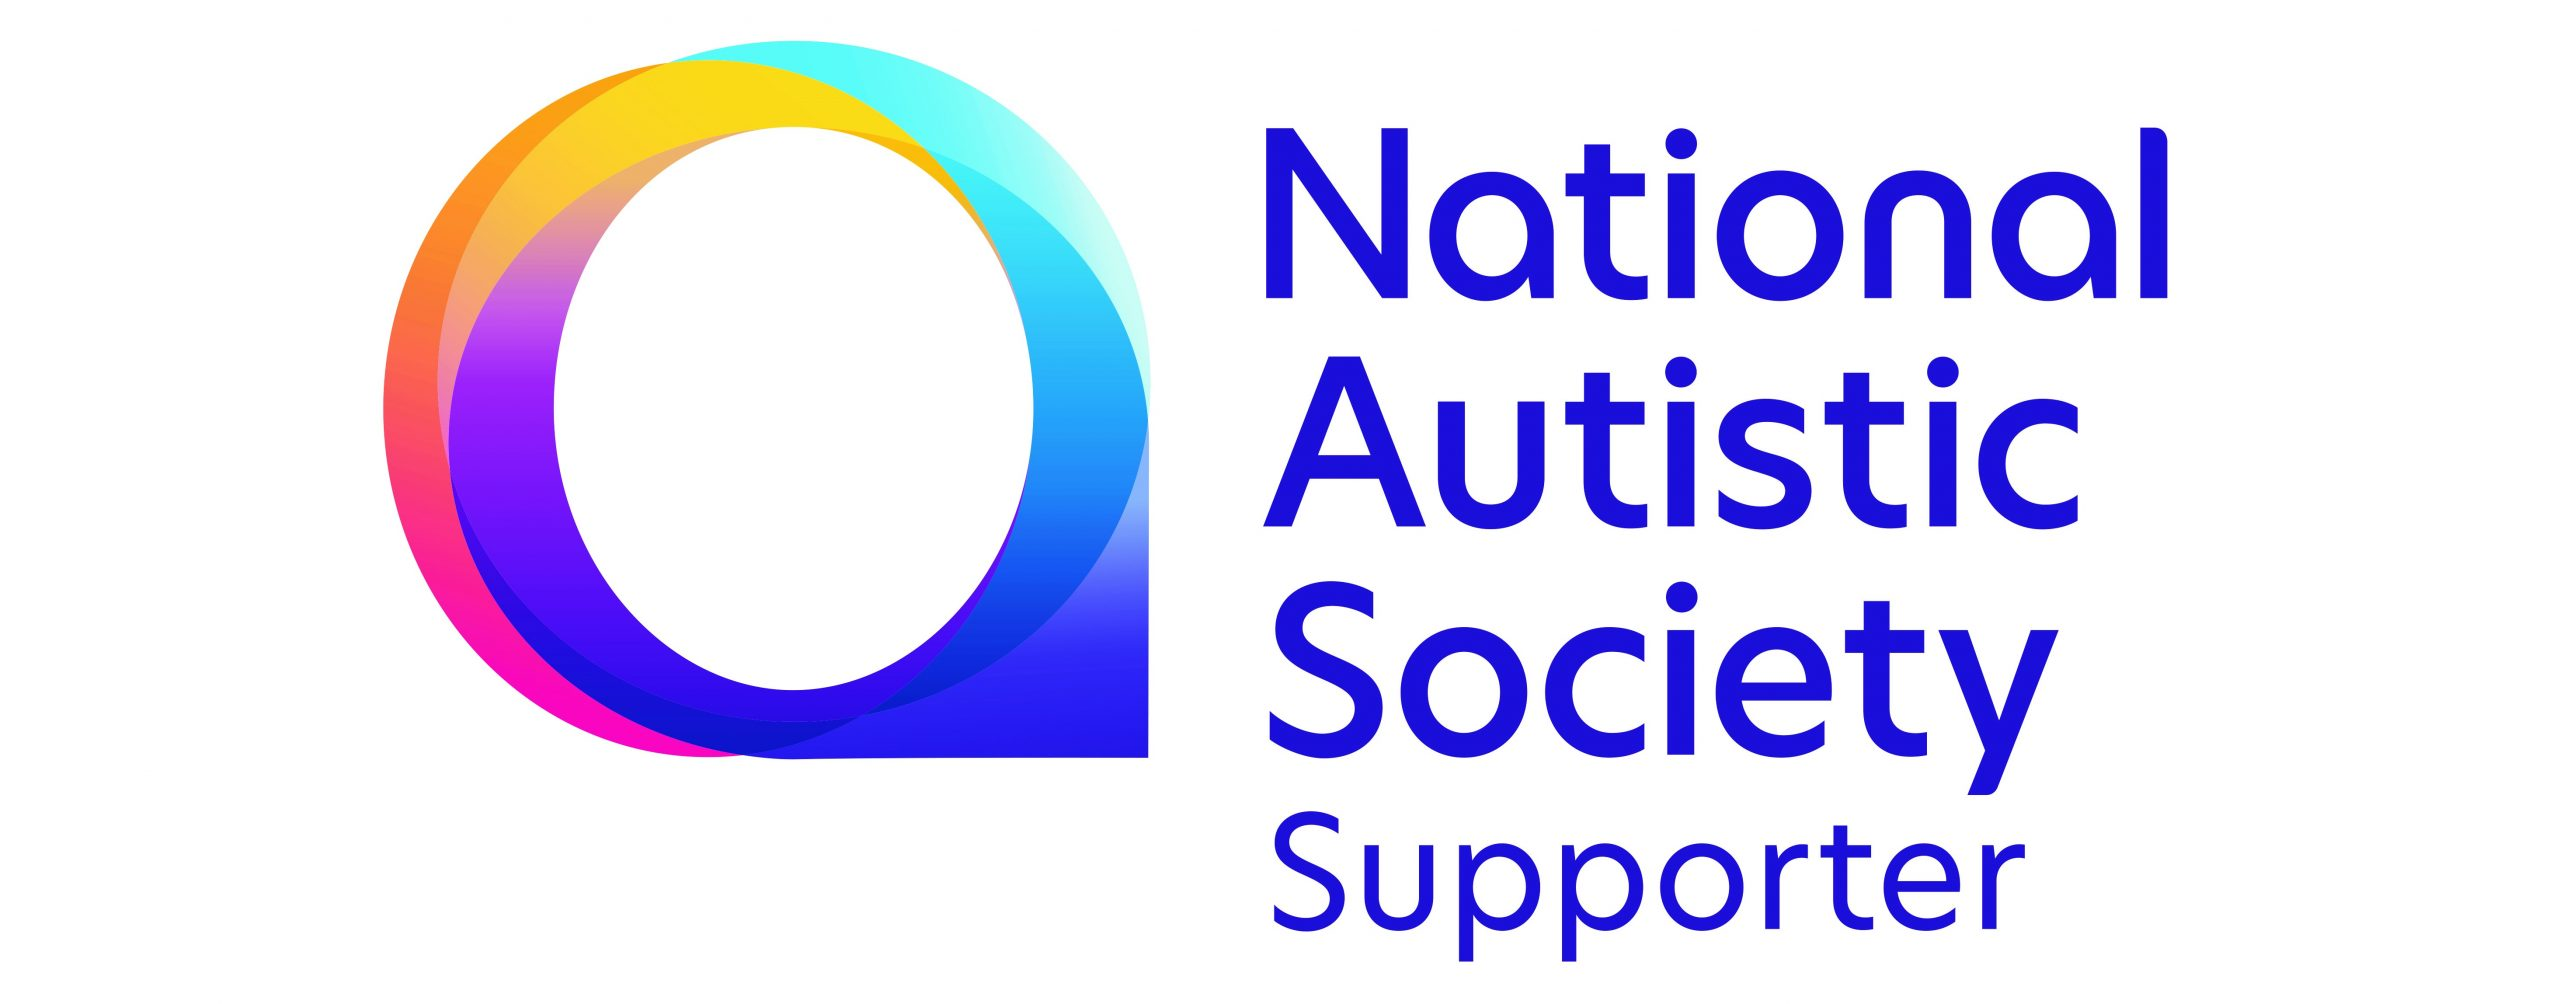 Proud supporter of the National Autistic Society